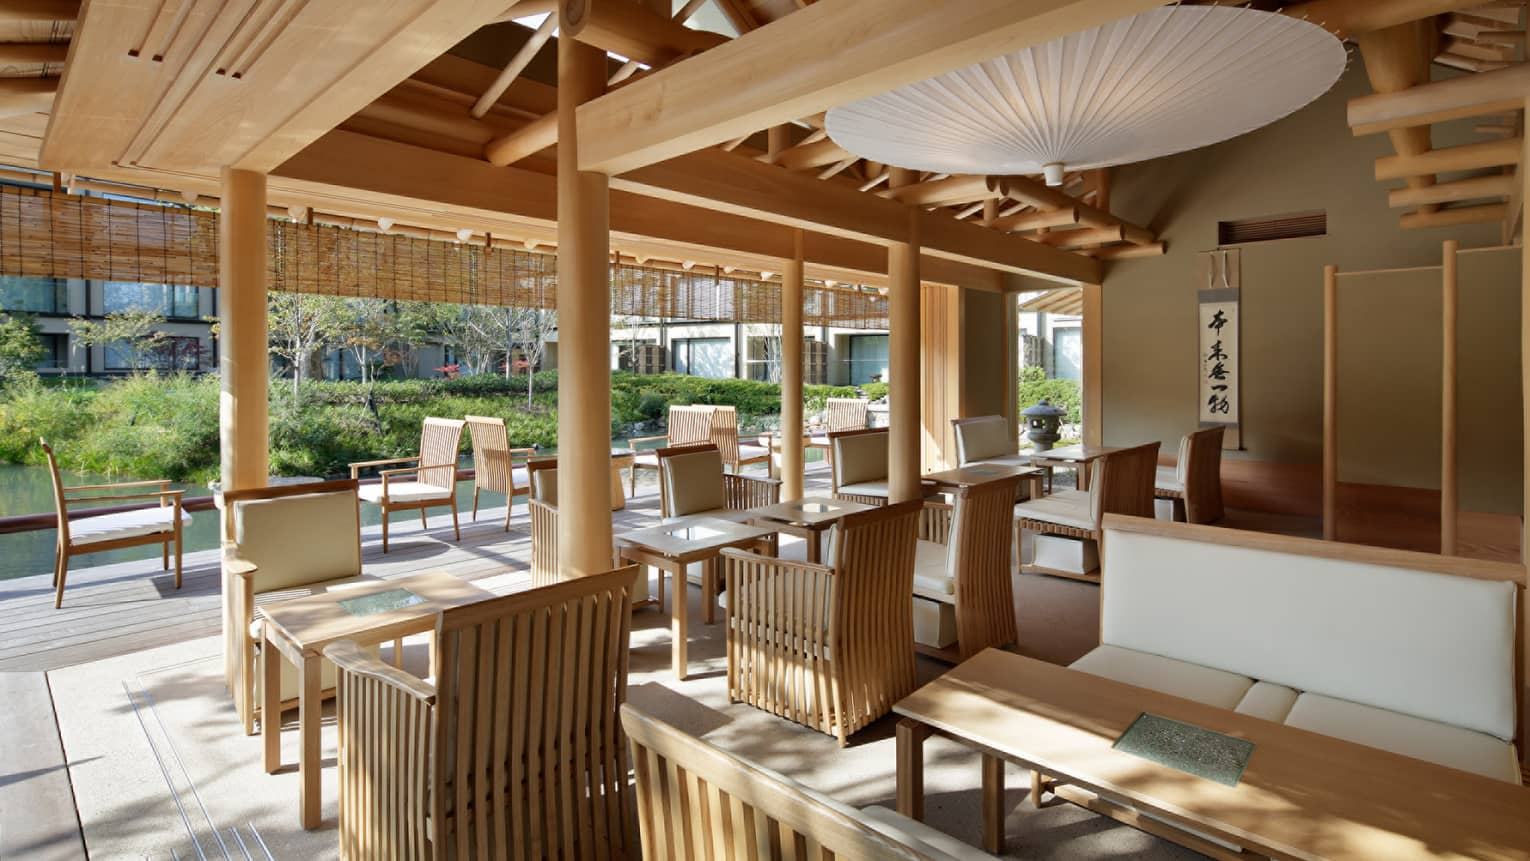 Shakusui-tei sunny patio with wood chairs, tables under white paper umbrella